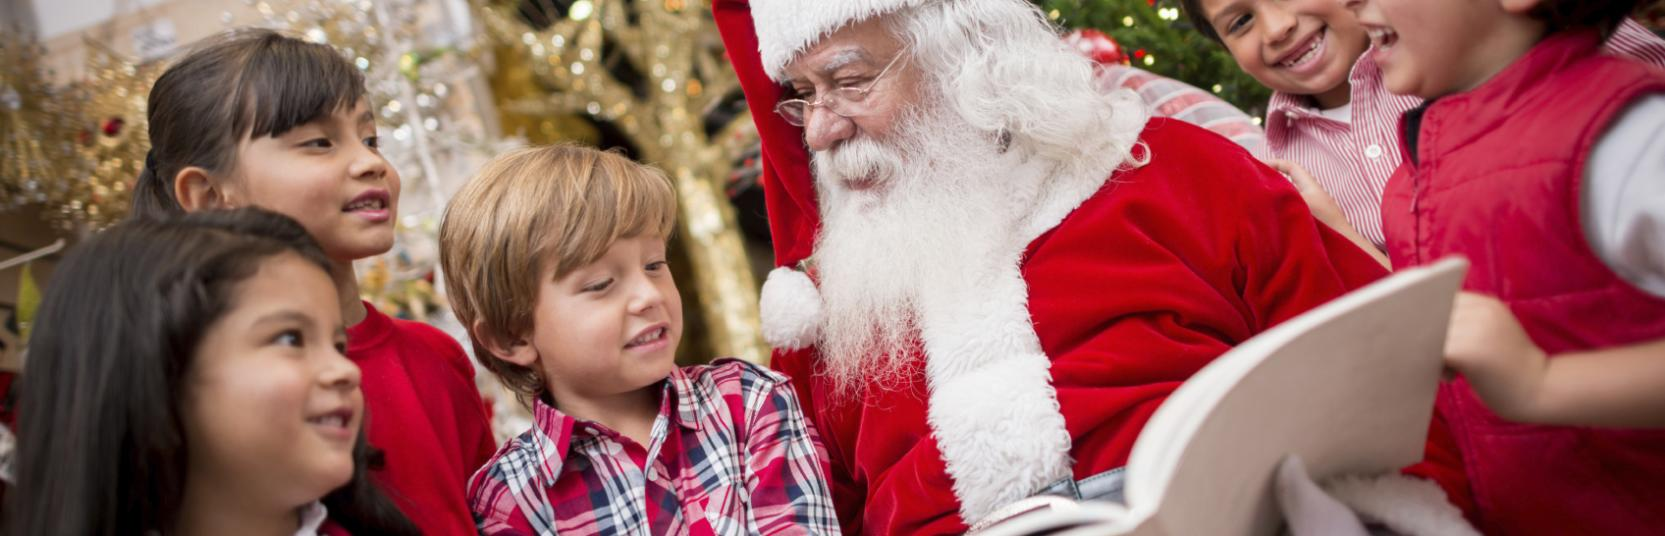 Christmas Roadshow Tour 2021 Texas Holiday Events In Southeast Texas